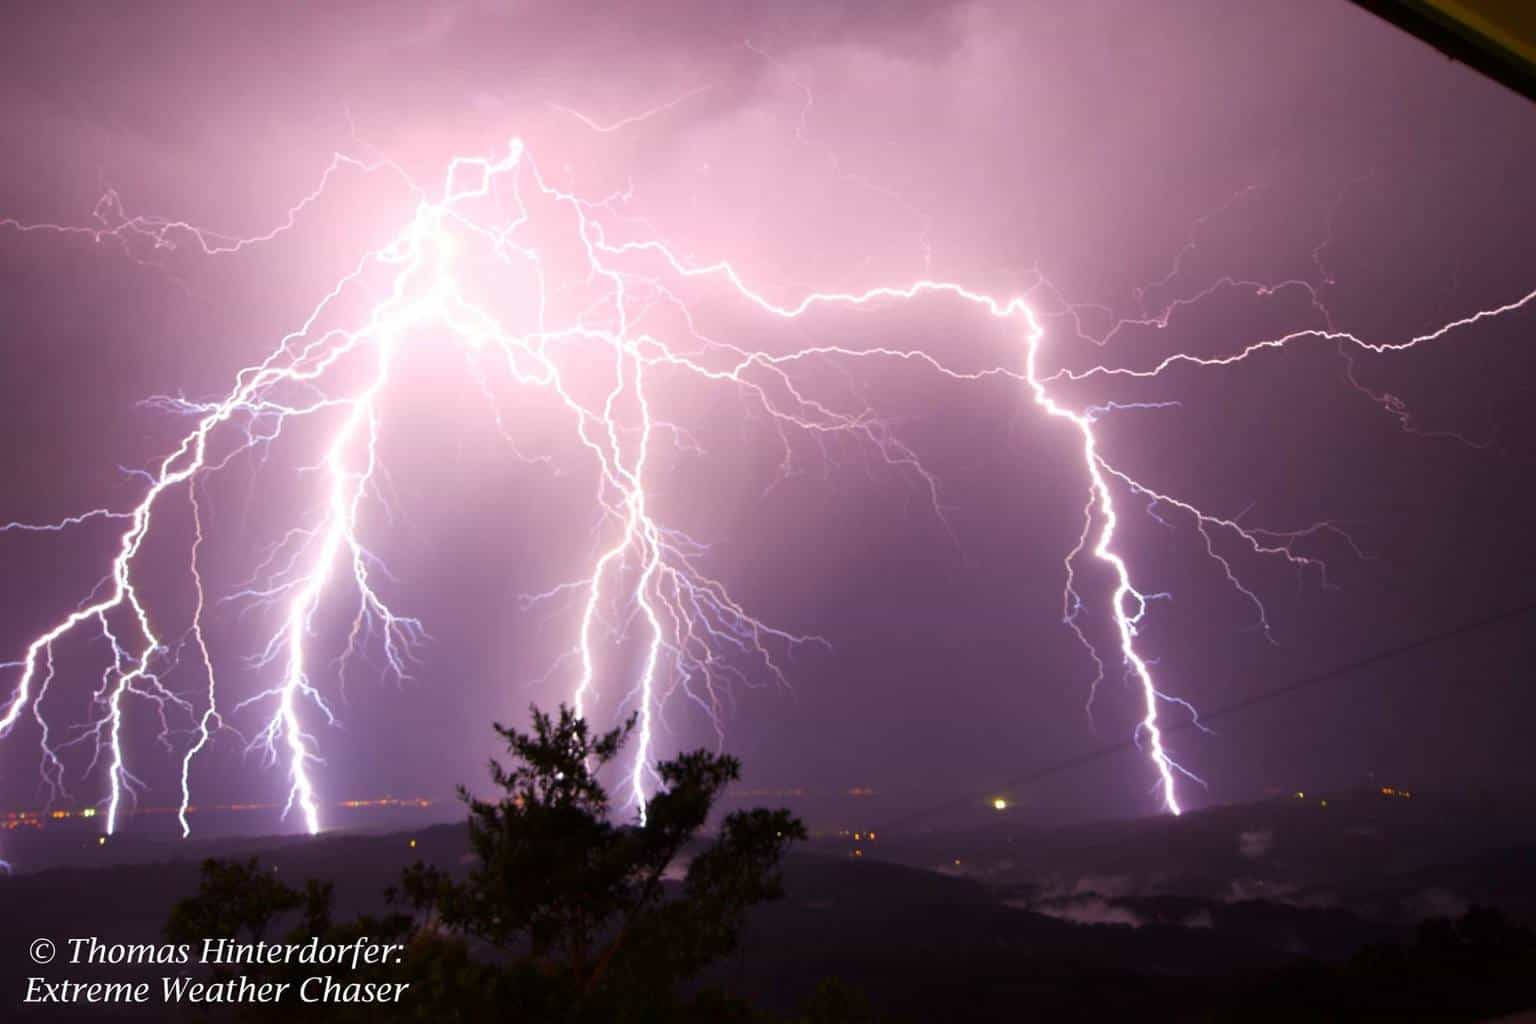 Bolt barrage! 2 x 30sec stack of a bolt barrage exploding over Maleny, Sunshine Coast, QLD back on November 6. Unreal to witness and even more surreal to capture.